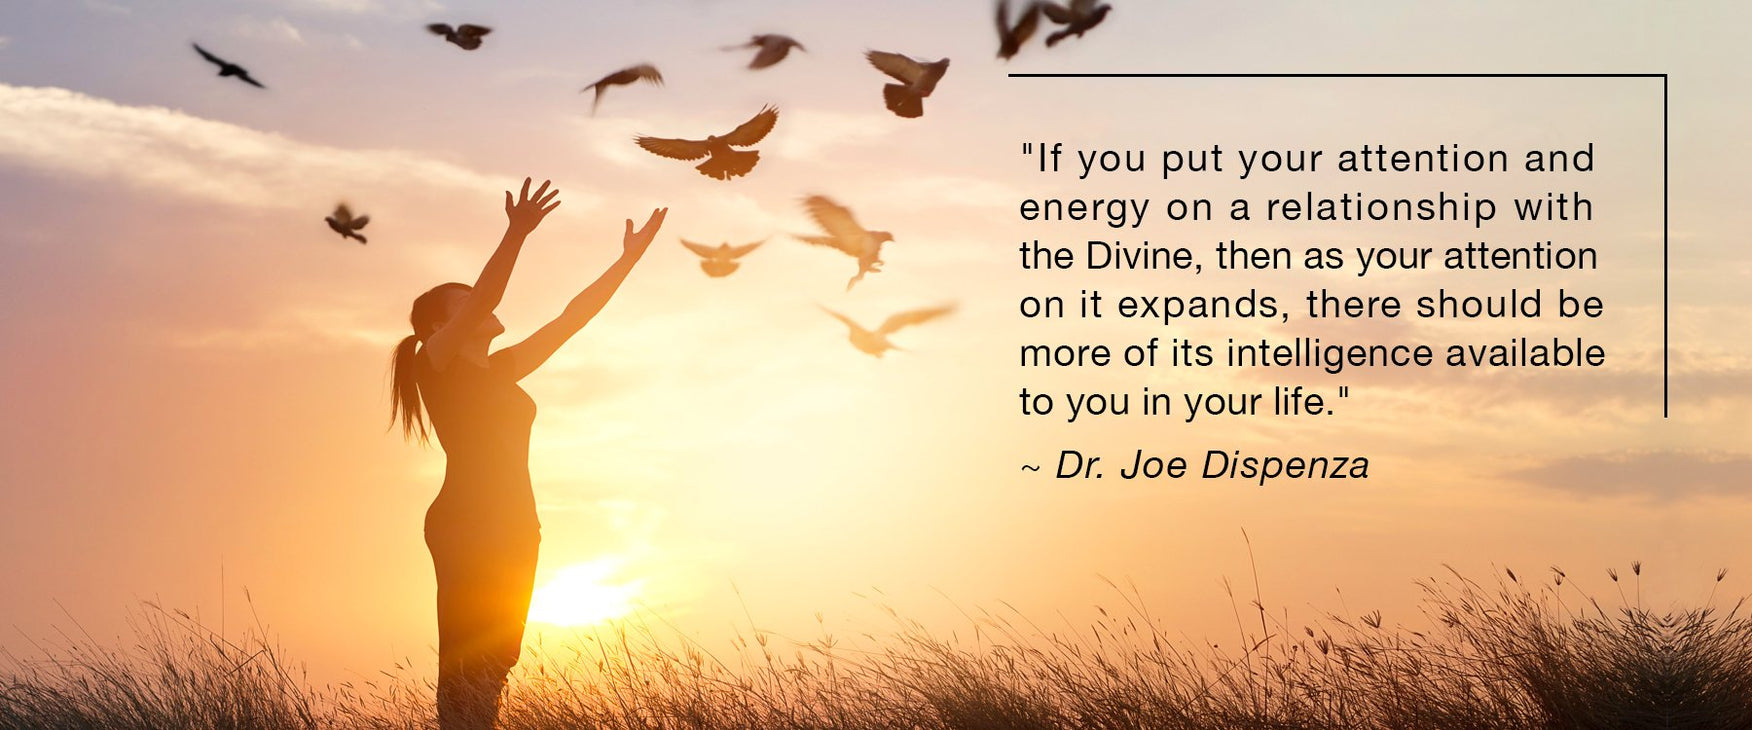 Developing a Personal Relationship with the Divine